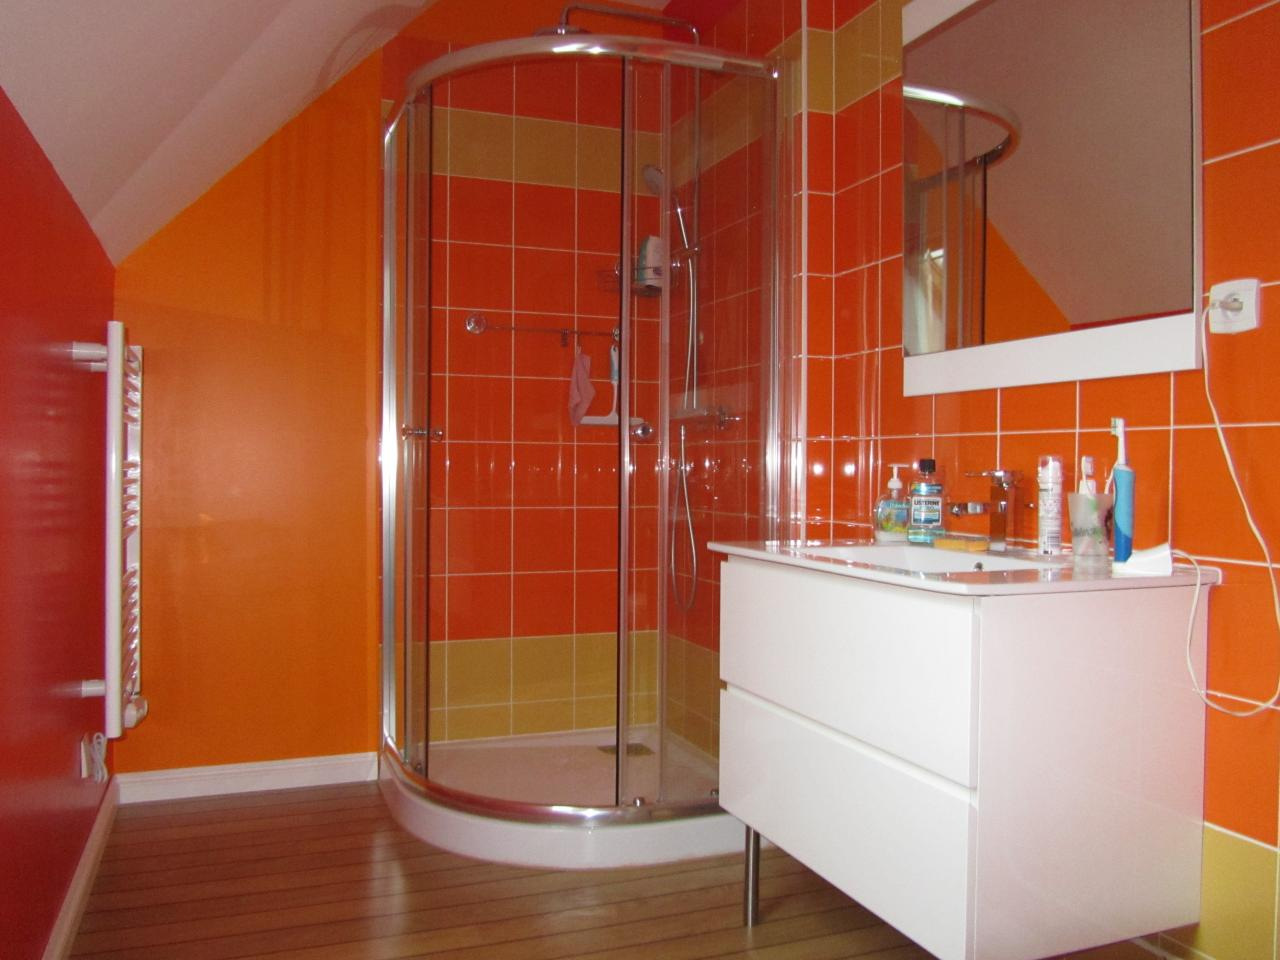 Carrelage salle de bain jaune orange